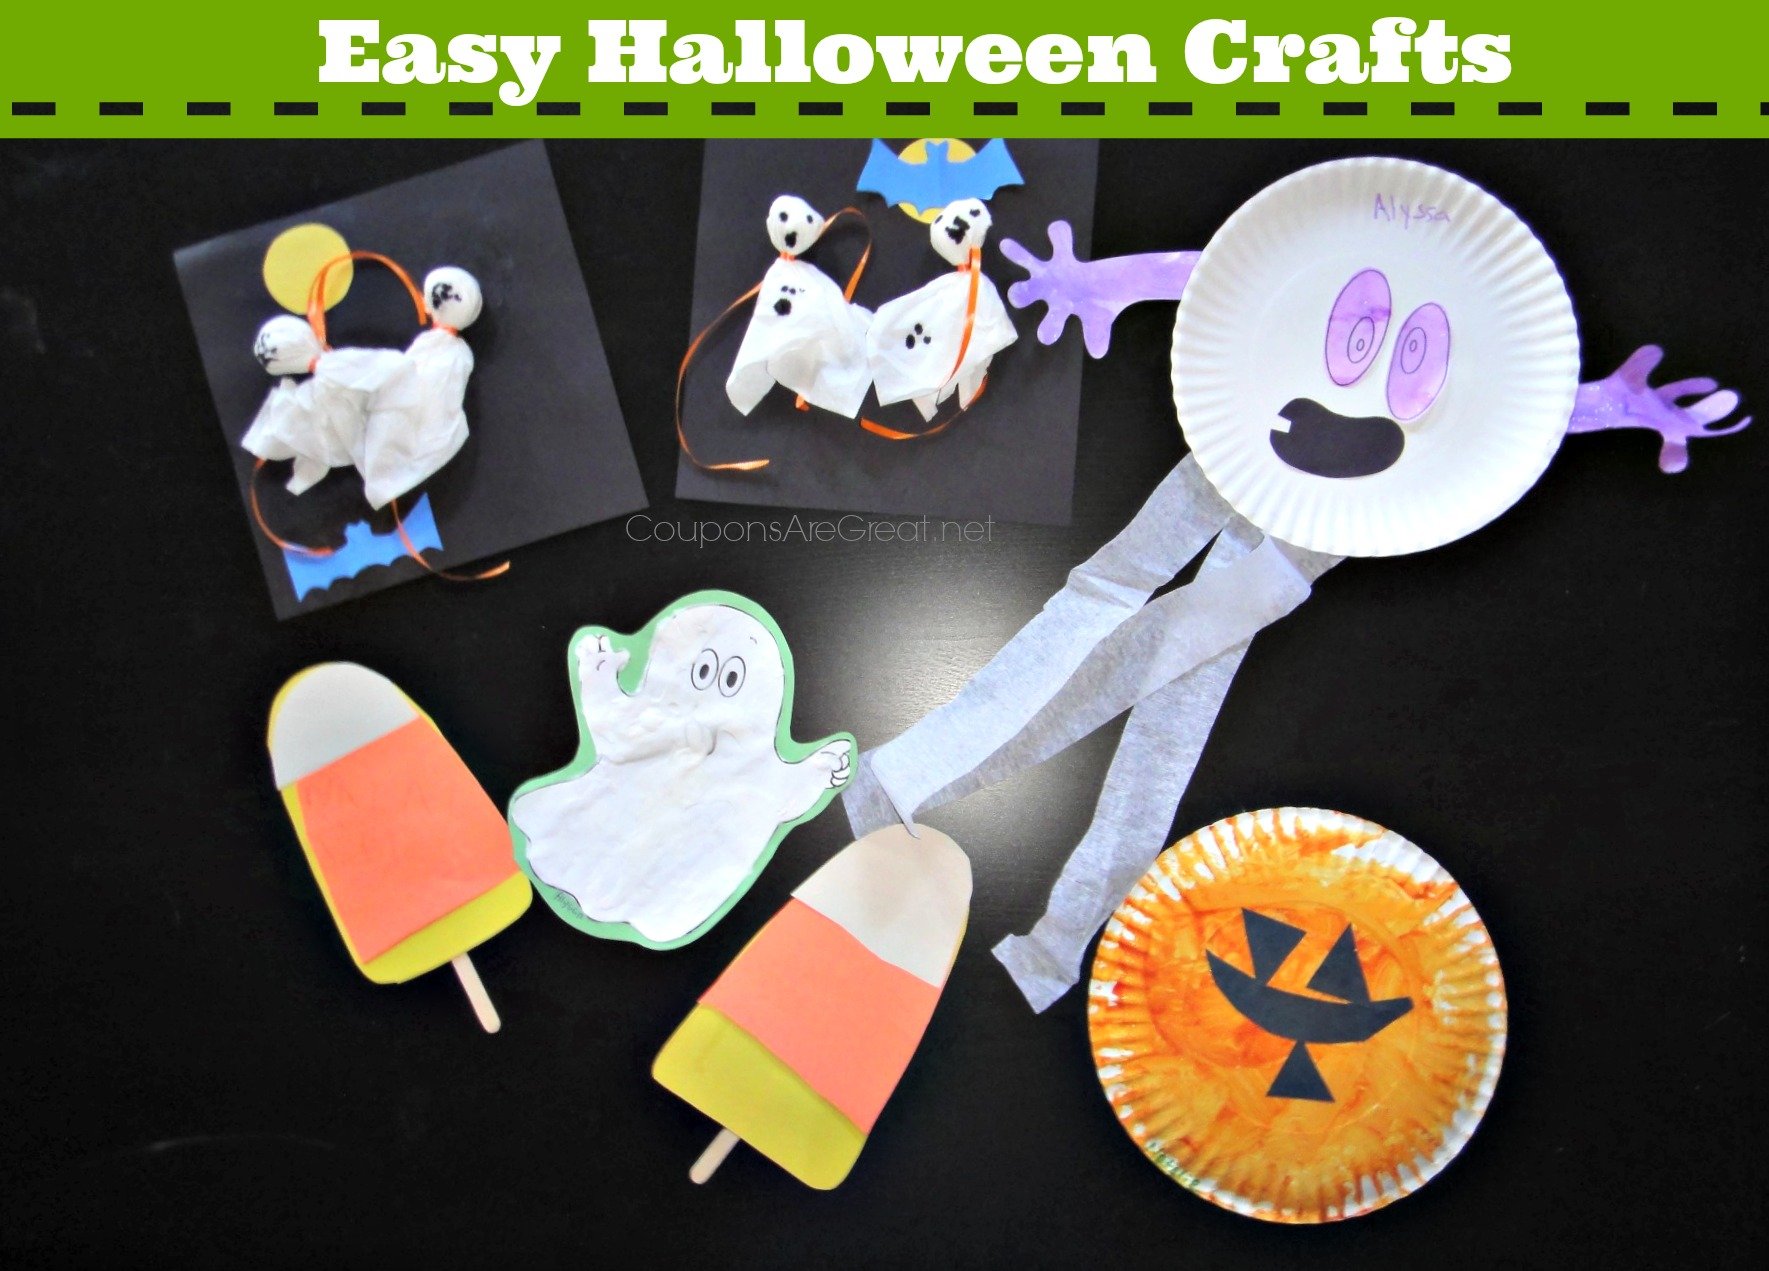 Easy Halloween Crafts Using Construction Paper